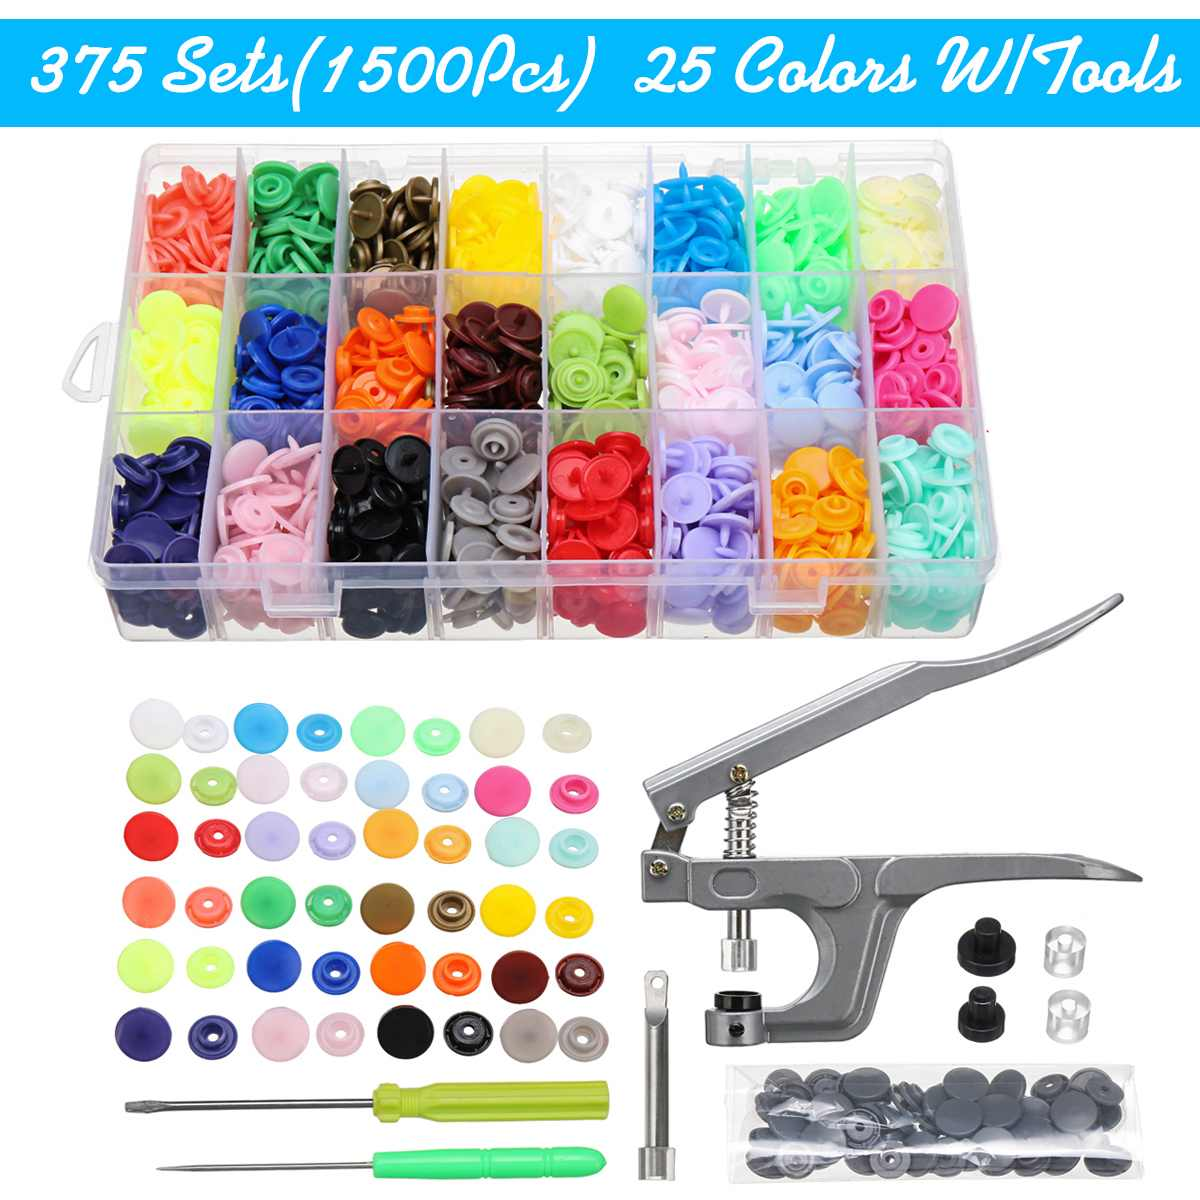 1500pcs T5 Buttons Fastener Resin Press Stud Snap With Pliers Screw Driver Tool DIY Baby Clothing Plastic Buttons Set 25 Color